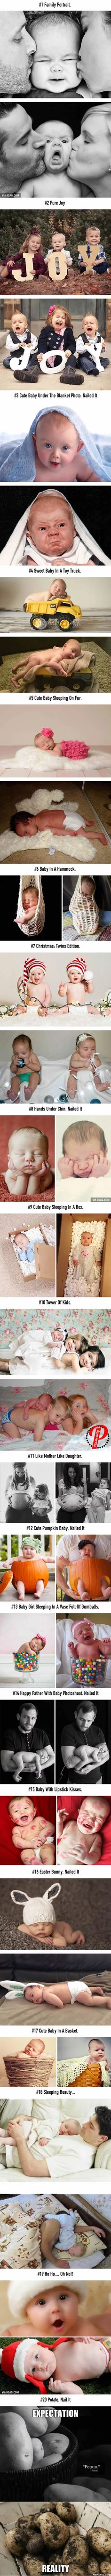 20 Hilarious Baby Photoshoot Fails is part of Funny babies - More memes, funny videos and pics on Funny Shit, 9gag Funny, Stupid Funny Memes, Haha Funny, Funny Cute, Hilarious, Funny Humor, Funny Drunk, Top Funny